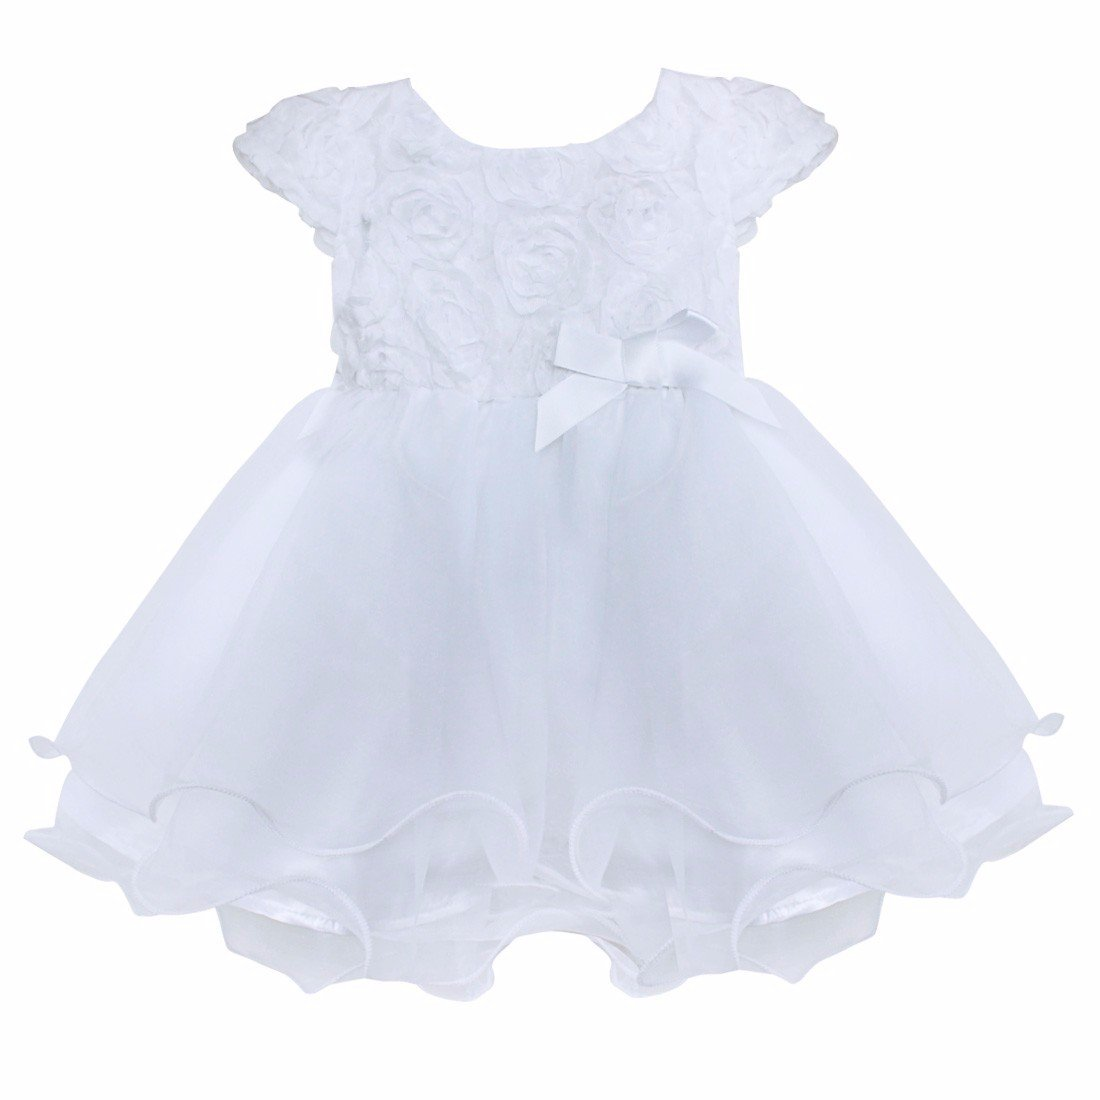 FEESHOW Infant Baby Girls' 3D Rose Flower Organza Party Wedding Christening Baptism Dress by FEESHOW